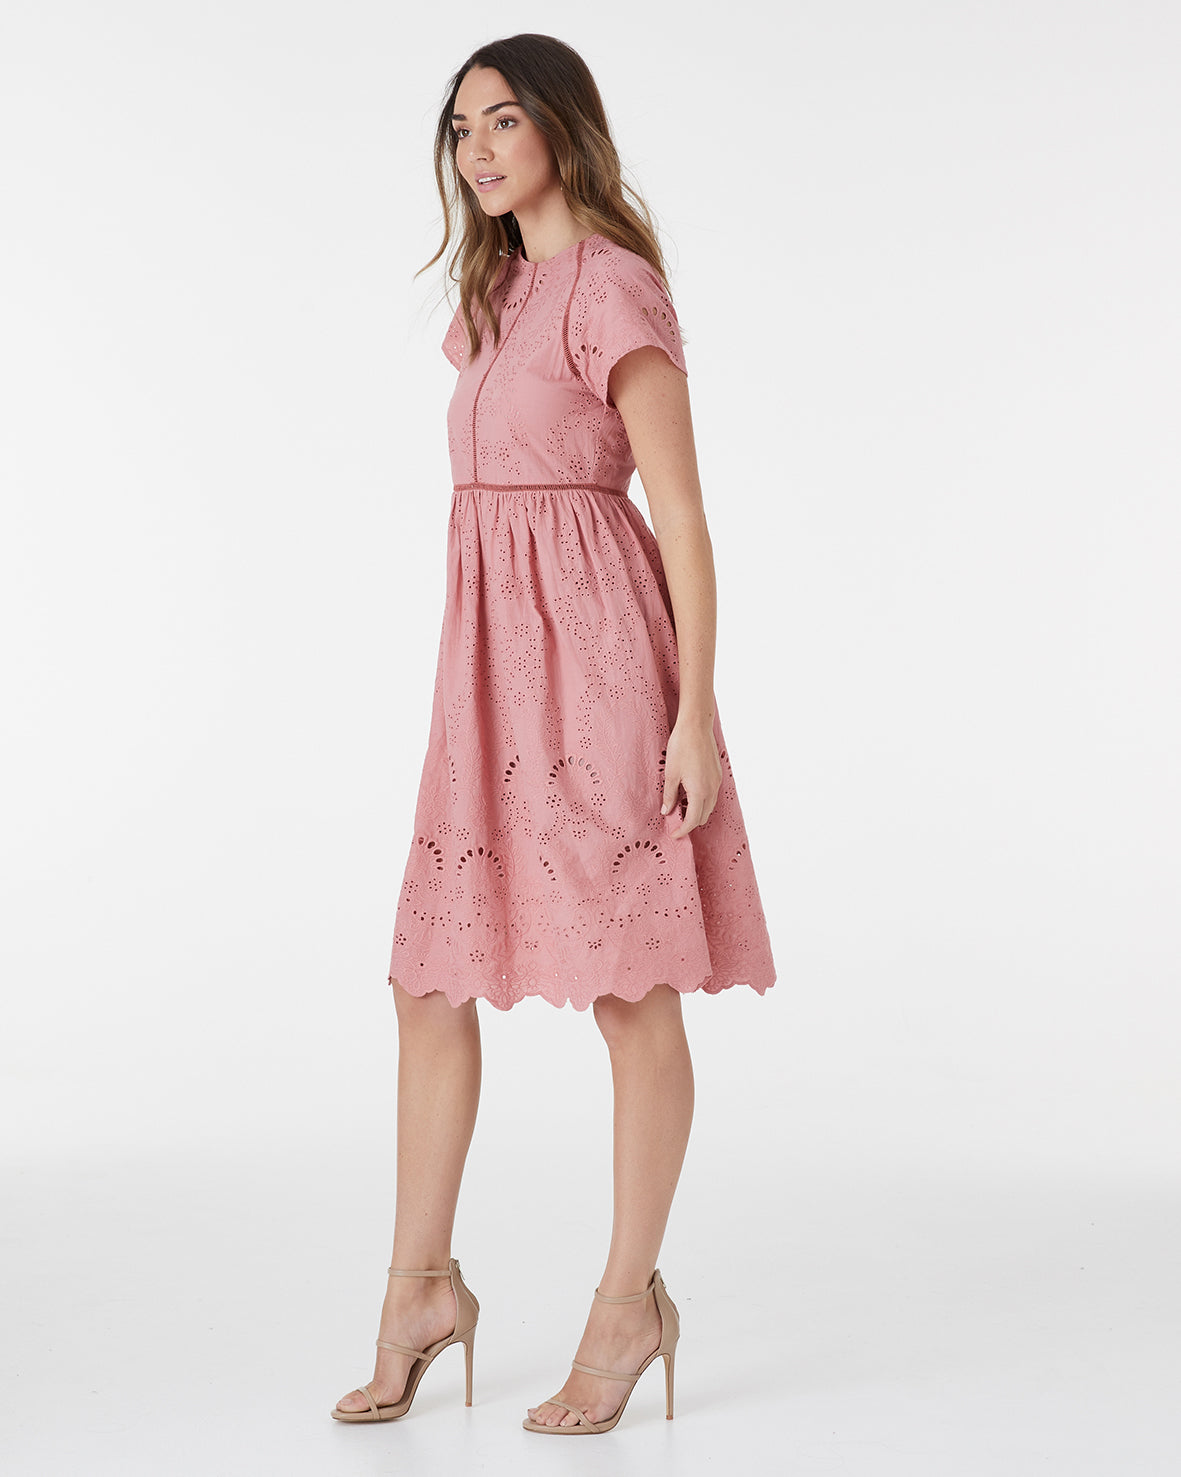 HAVANA LACE DRESS - DUSTY ROSE